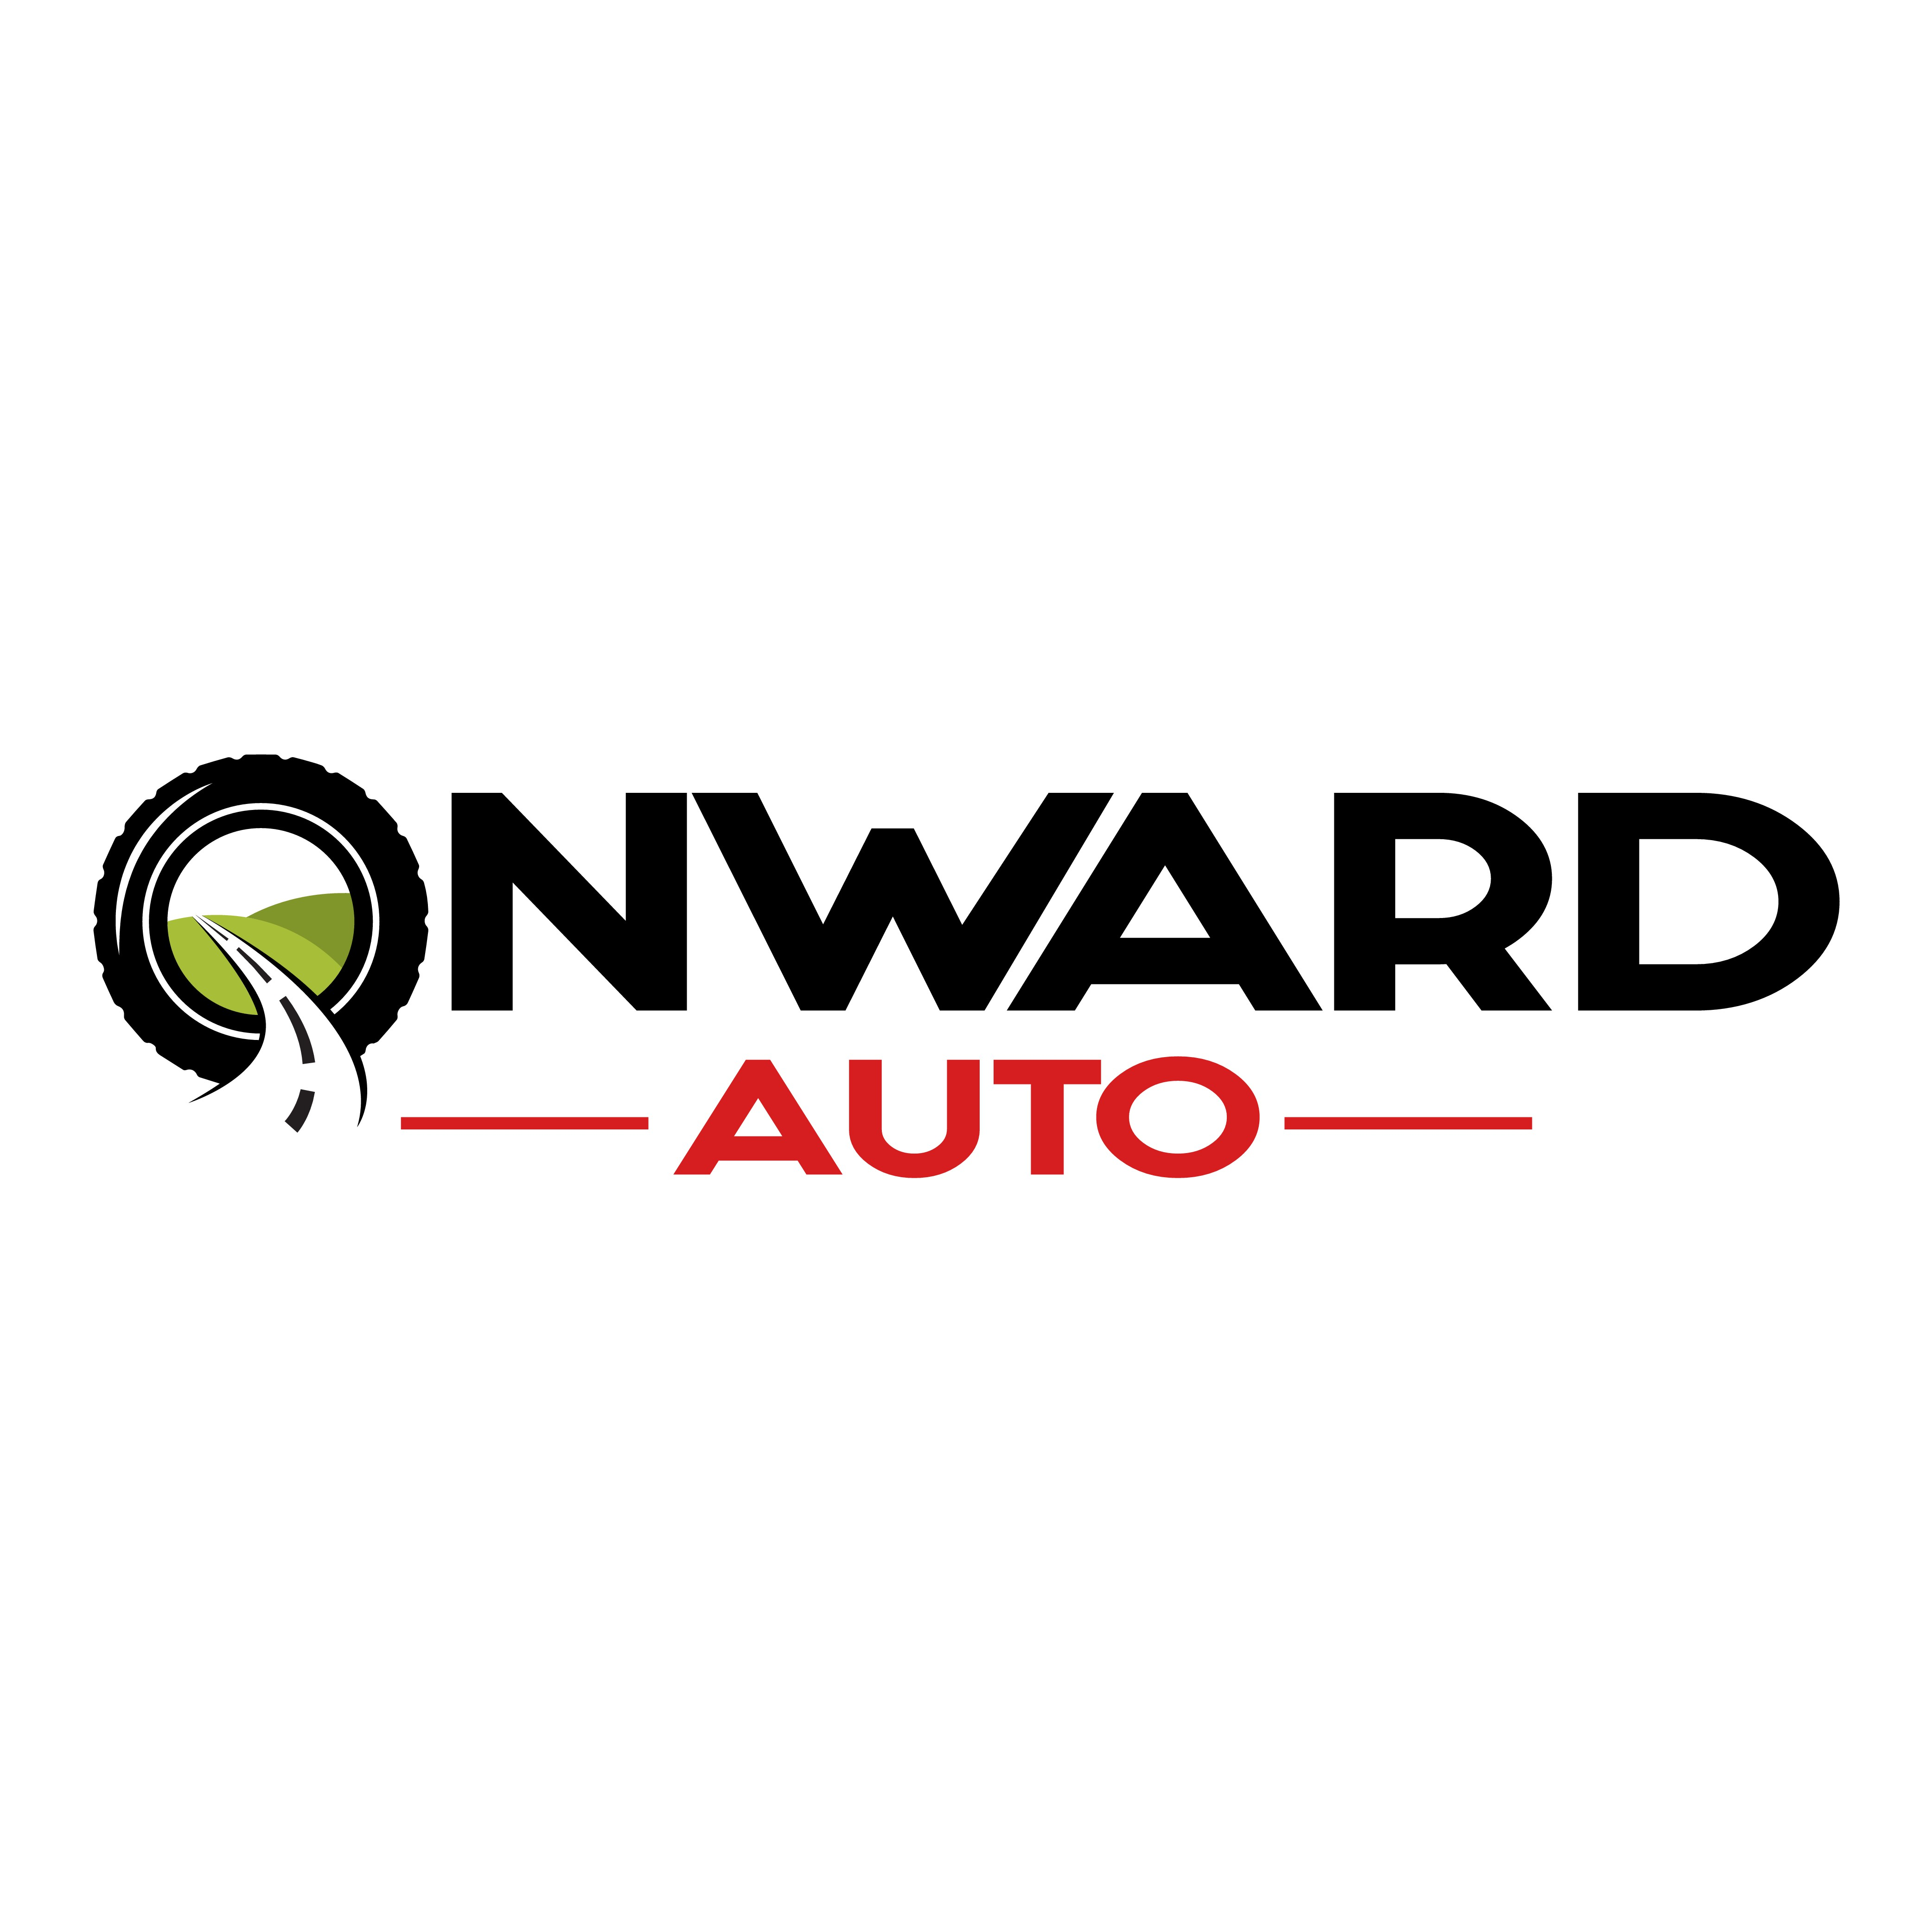 Distinct logo needed for a Used Automobile Dealer